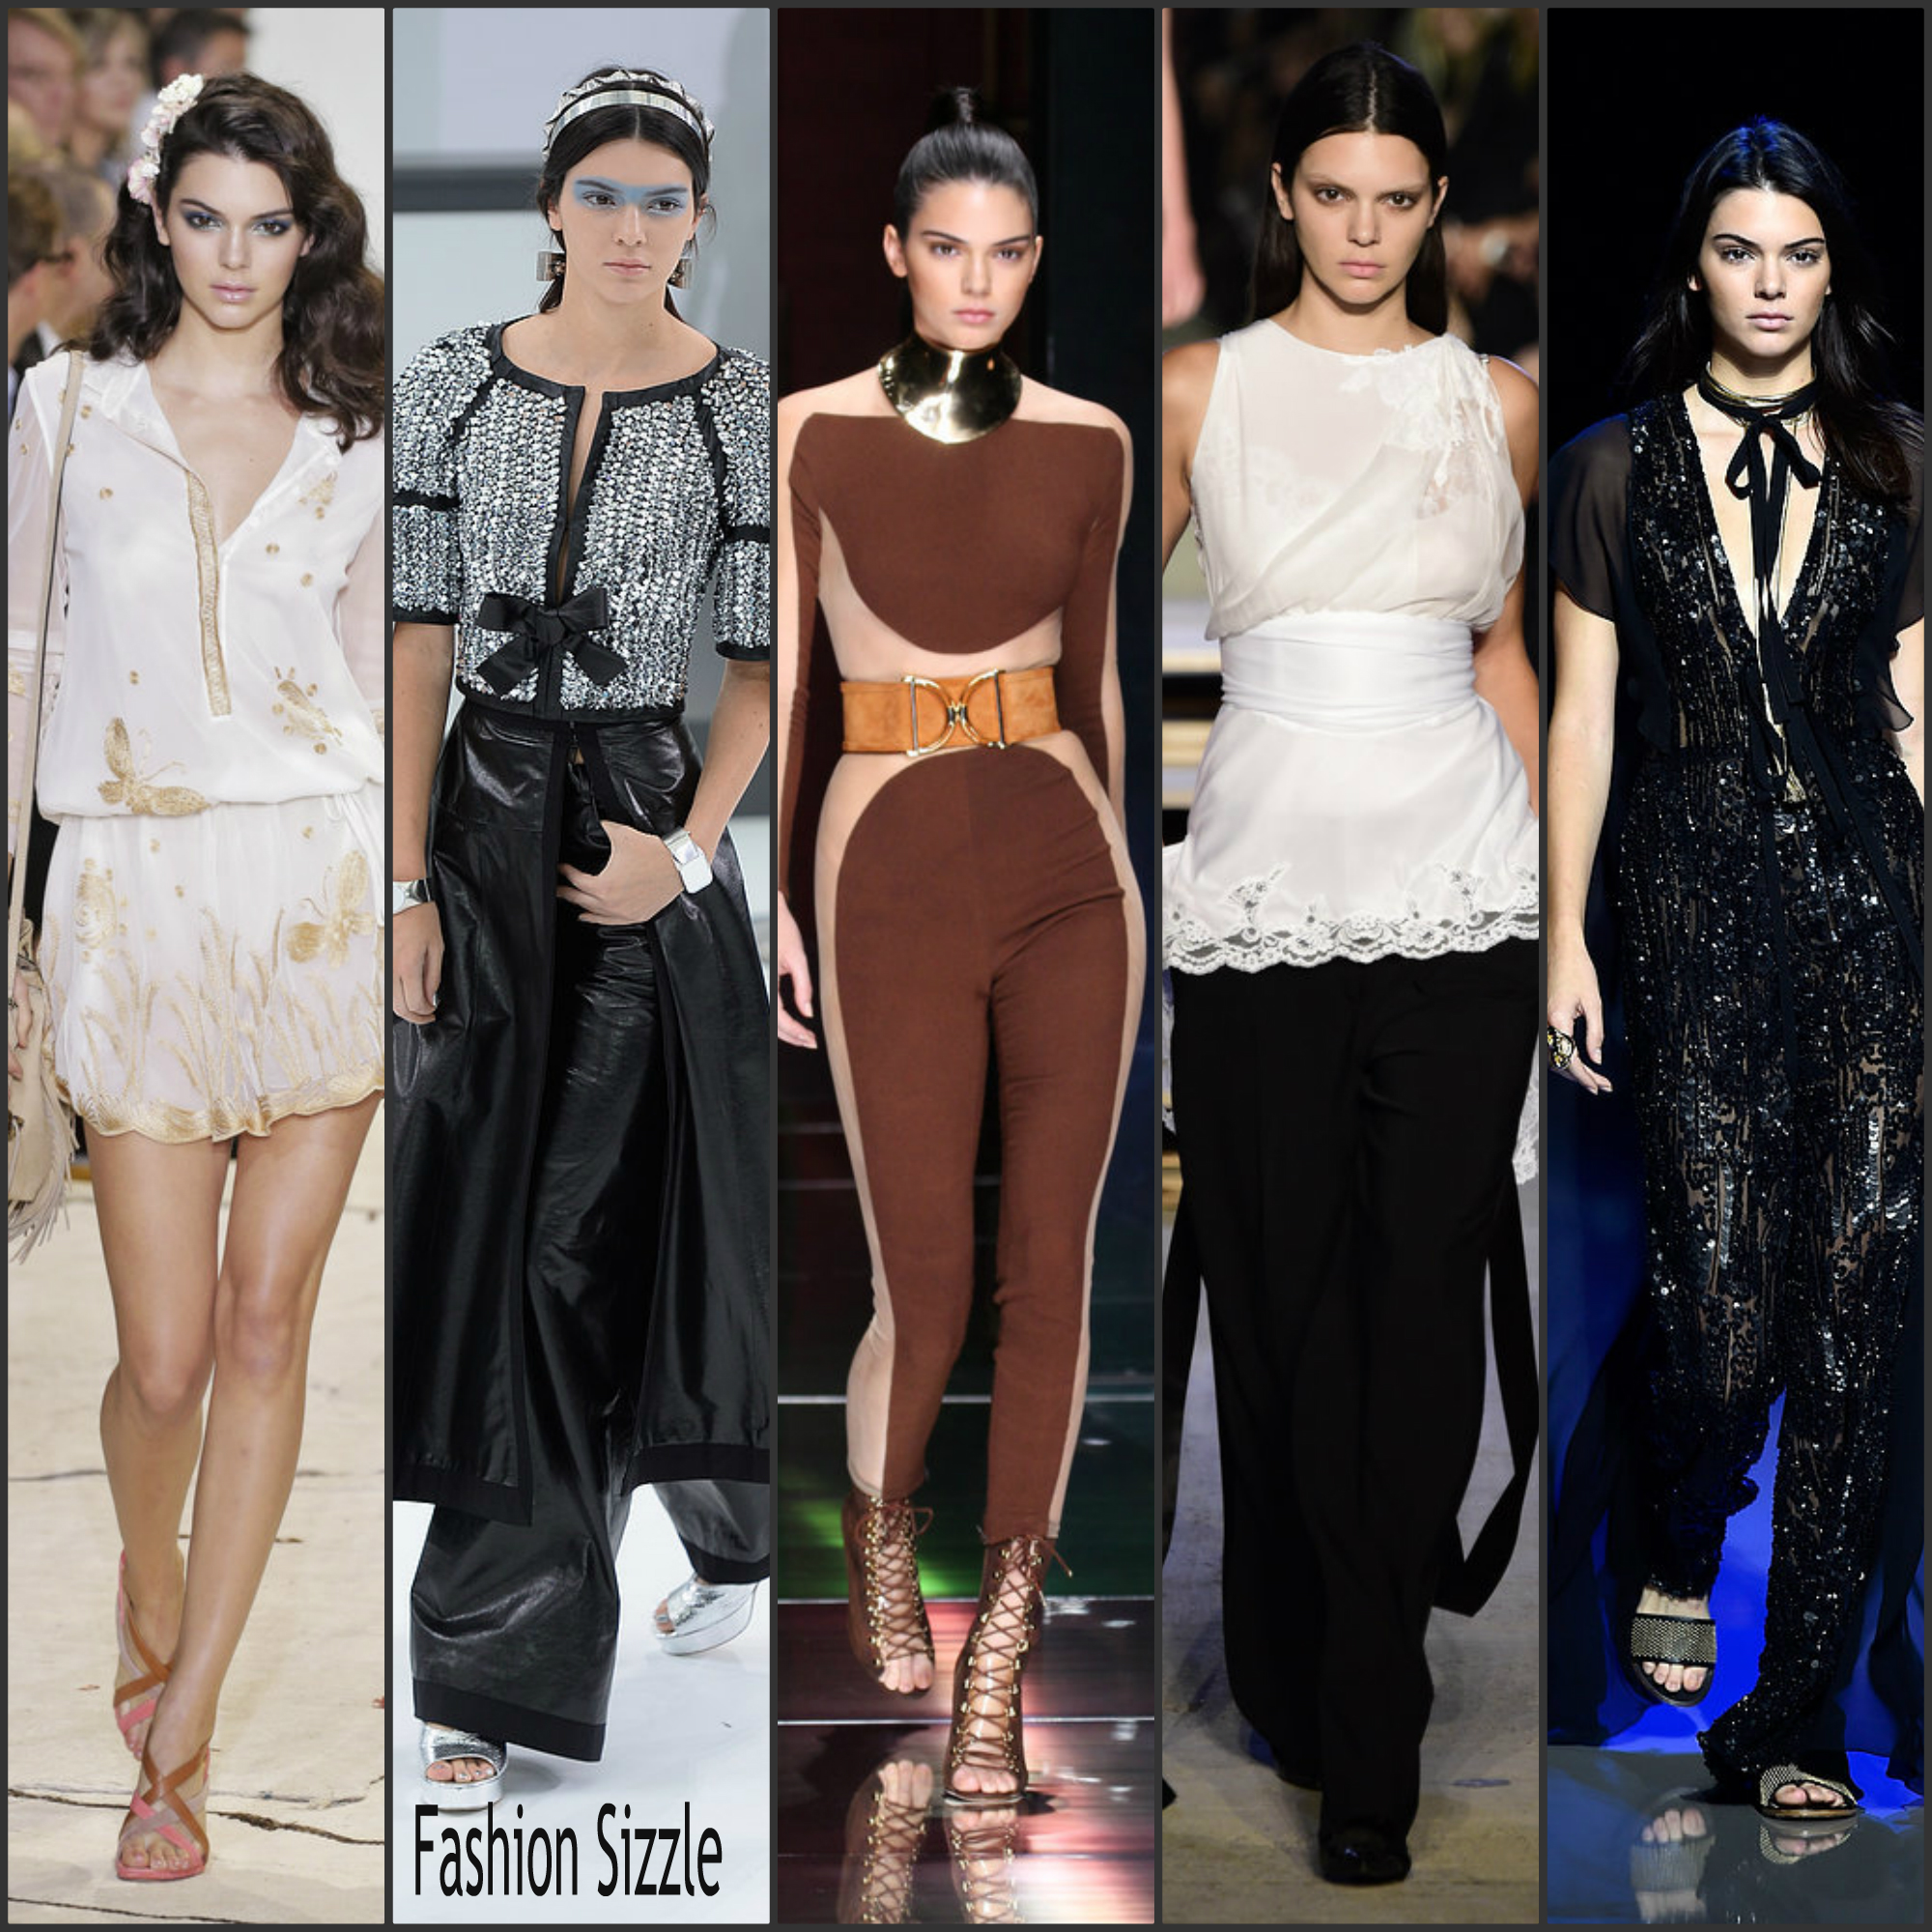 kendall-jenner-style-at-fashion-week